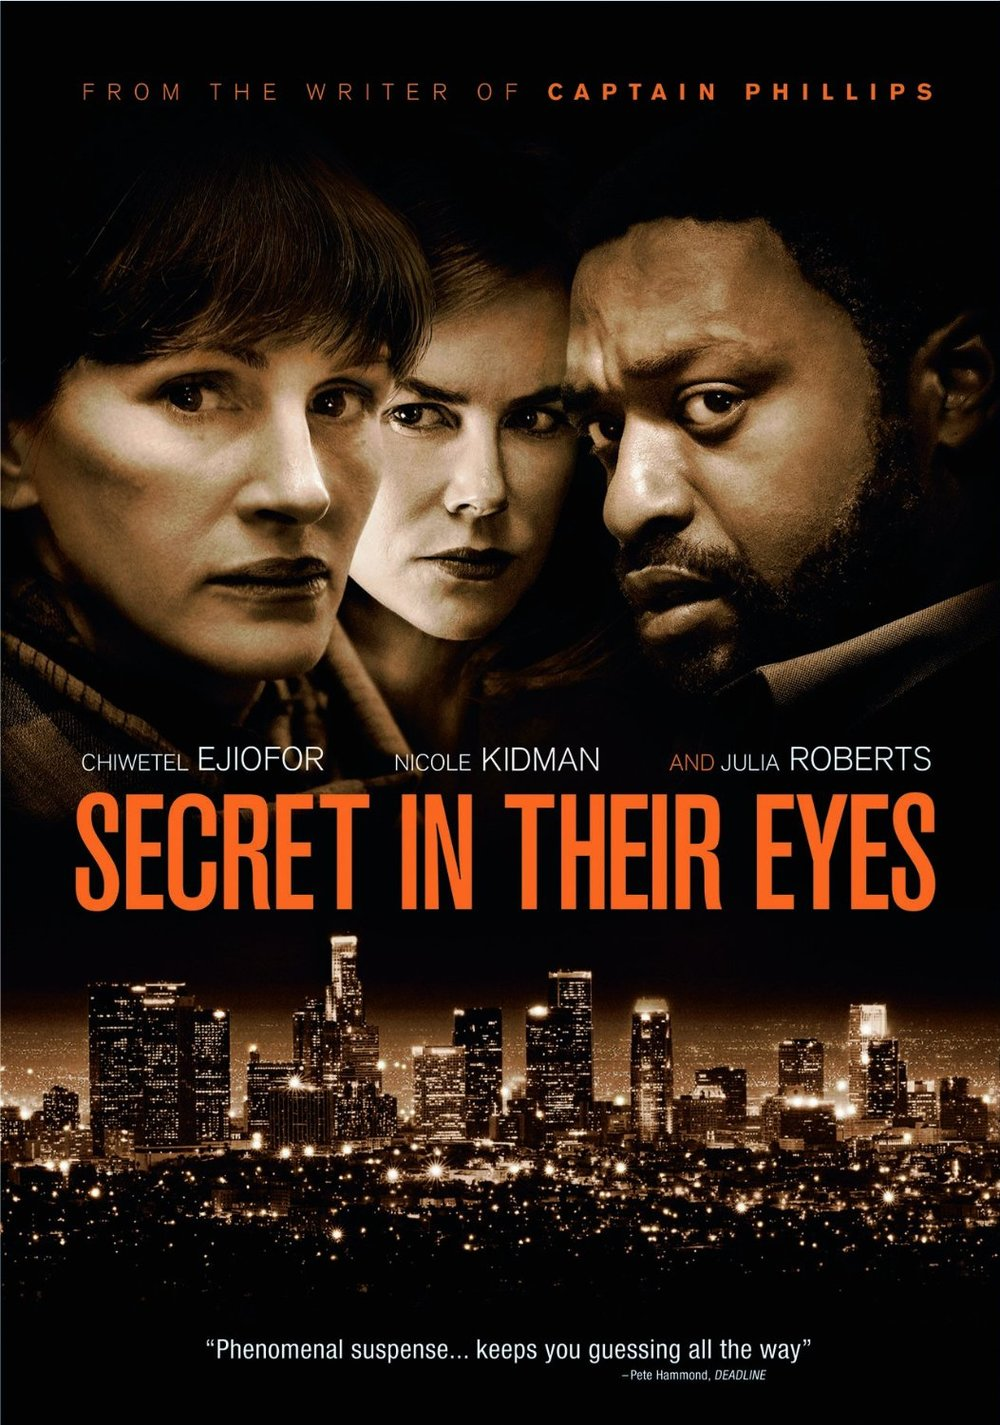 Secret in Their Eyes DVD